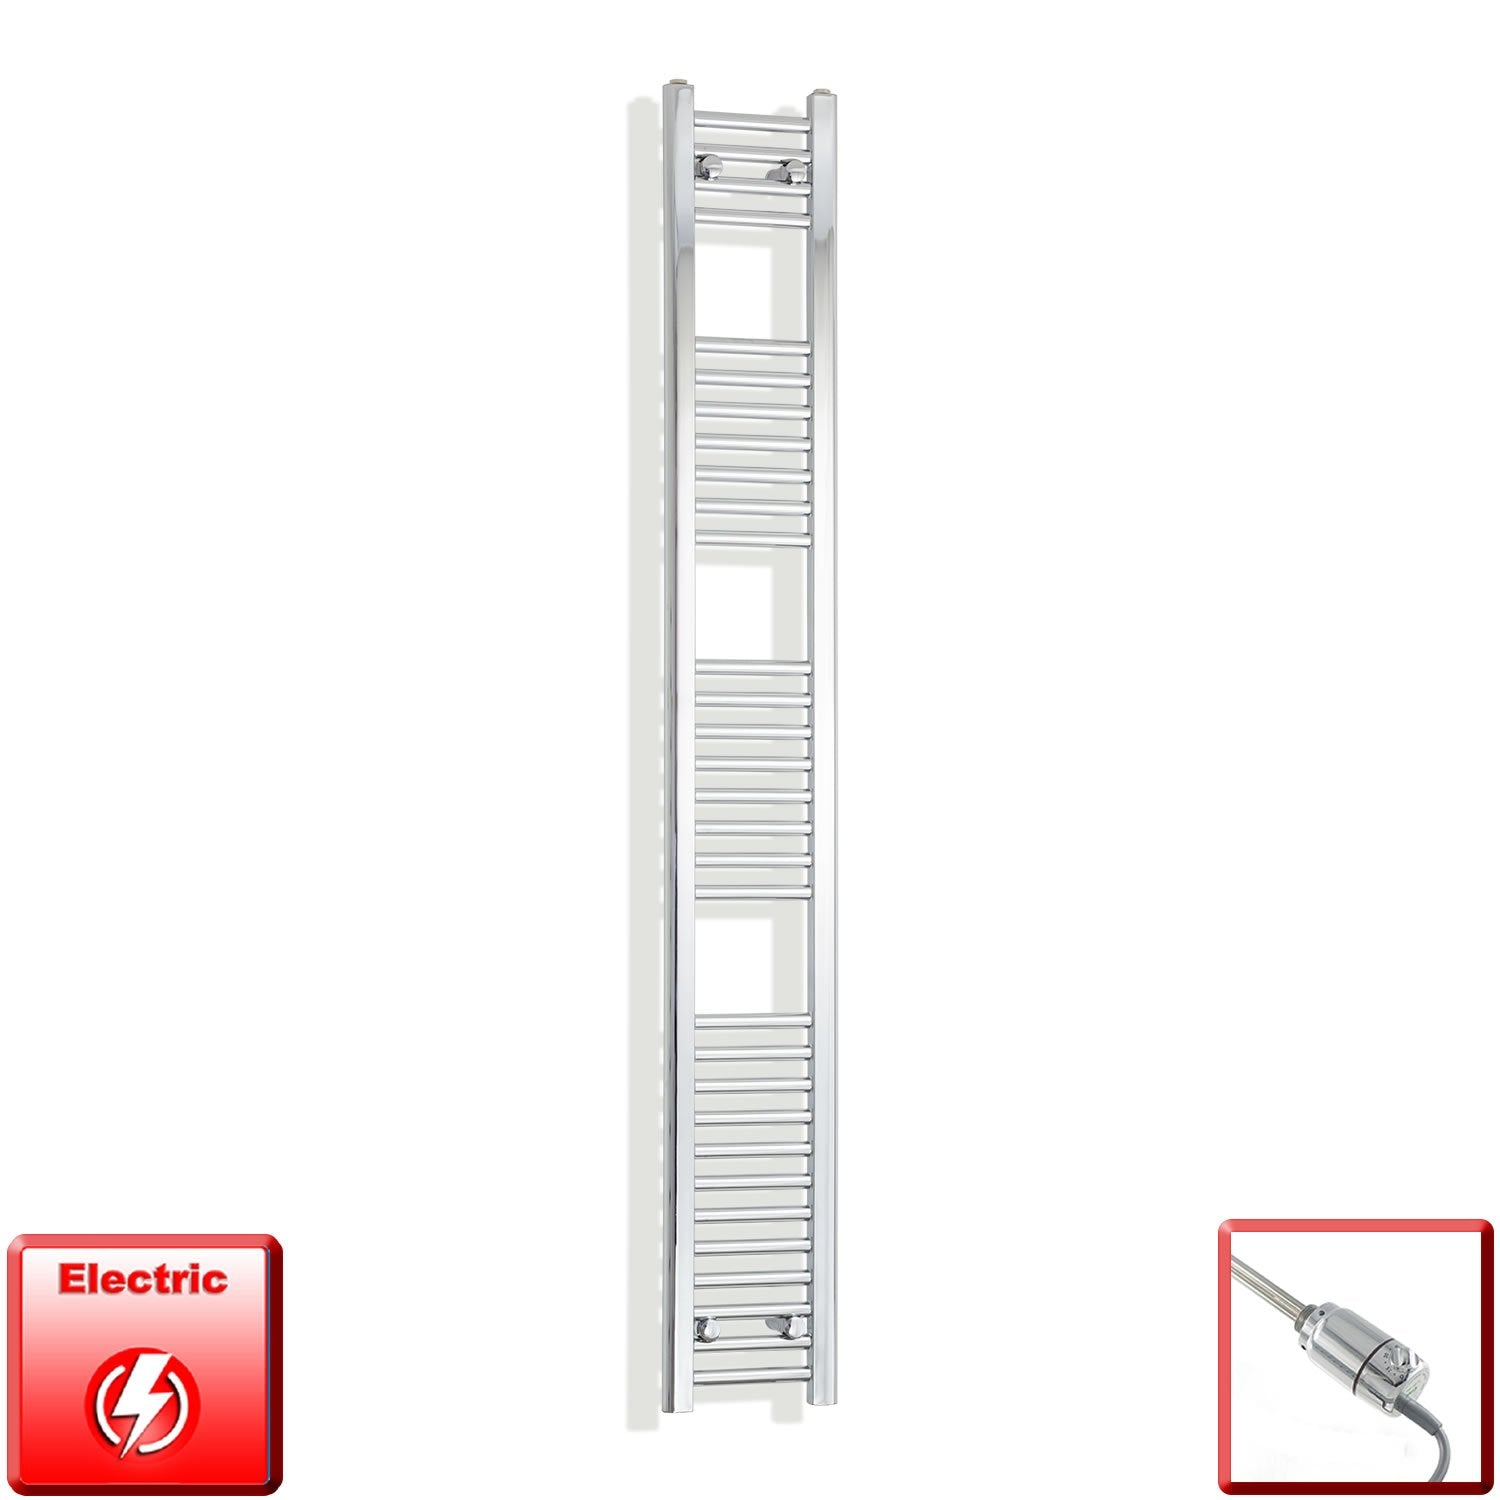 250mm Wide 1800mm High Flat Chrome Pre-Filled Electric Heated Towel Rail Radiator HTR,GT Thermostatic